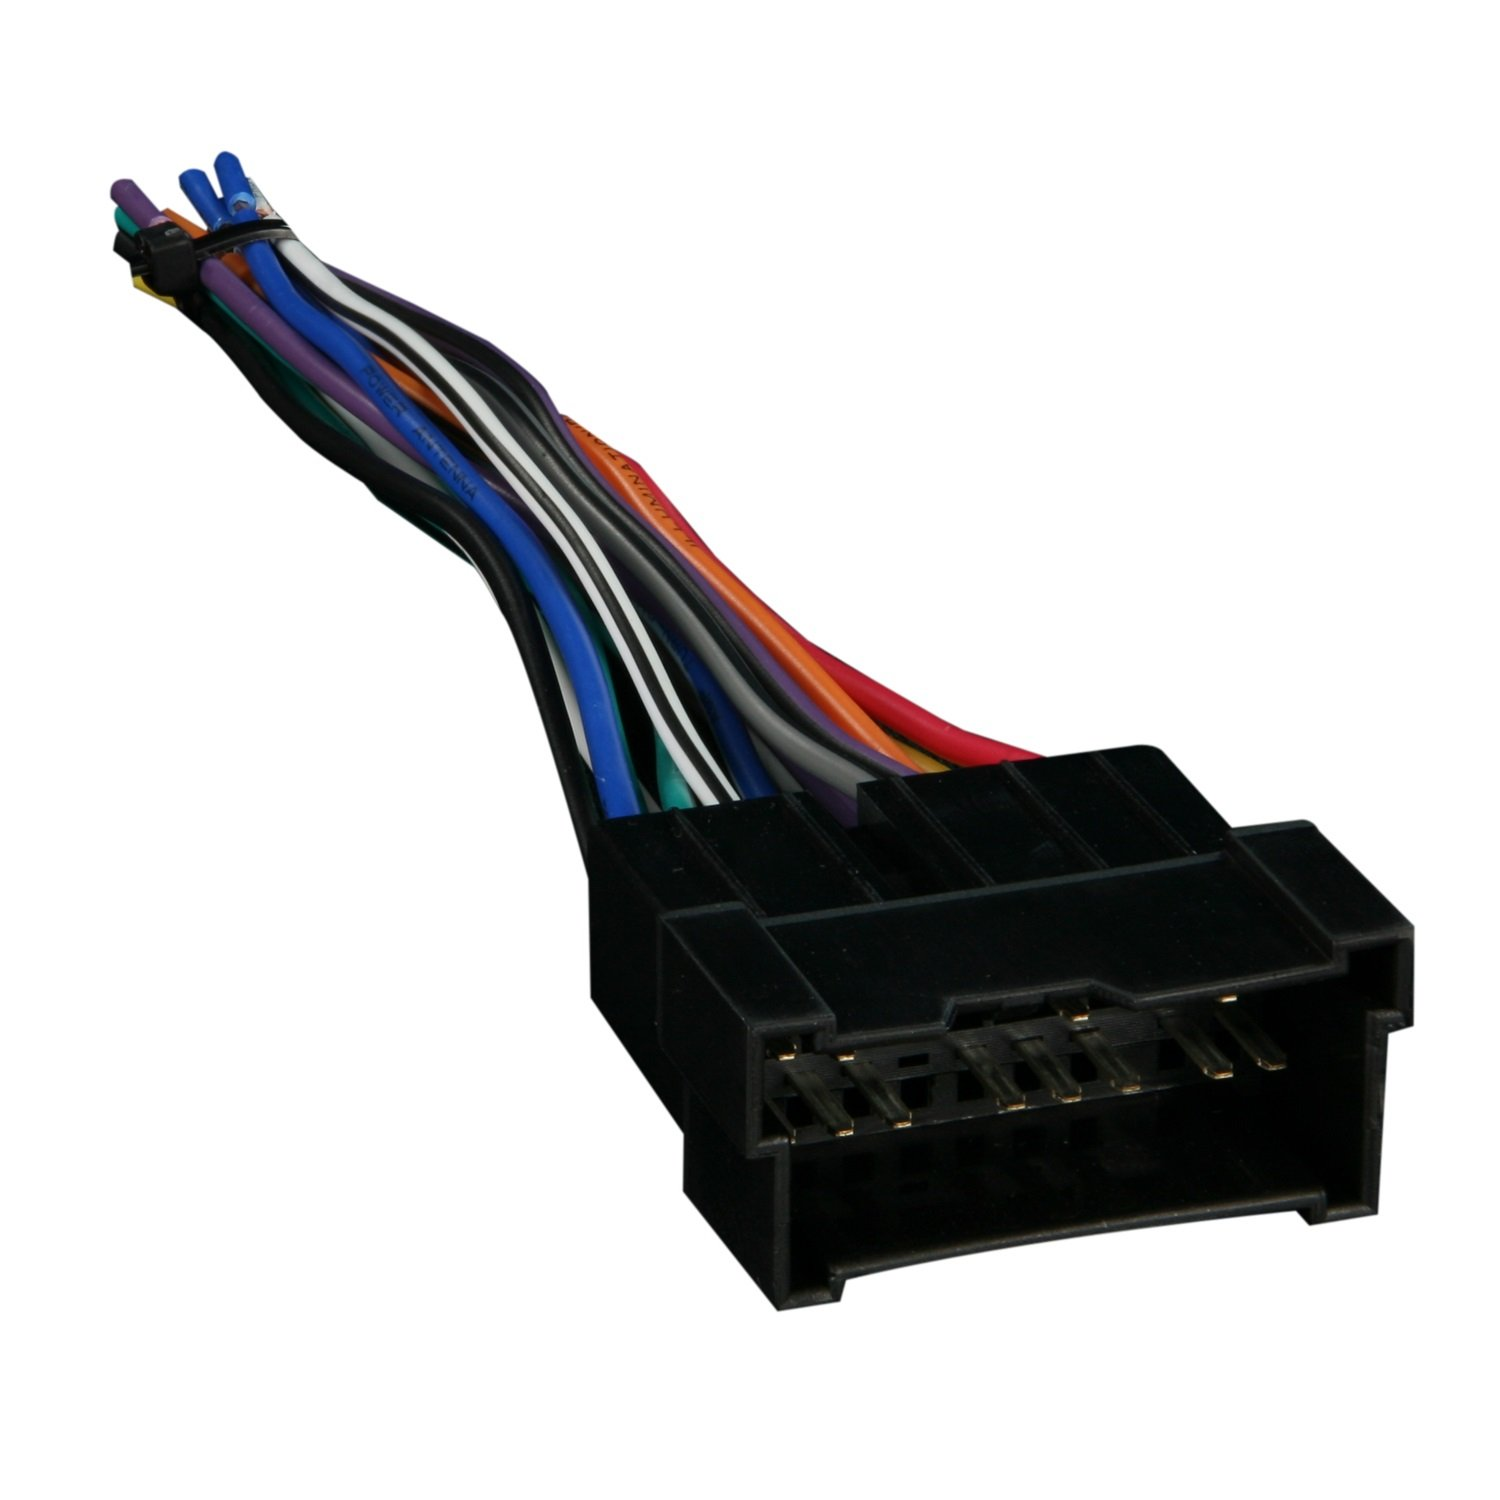 617yeBmOquL._SL1500_ amazon com metra 70 7301 radio wiring harness for hyundai kia 99 5 Wire Trailer Harness Diagram at gsmx.co